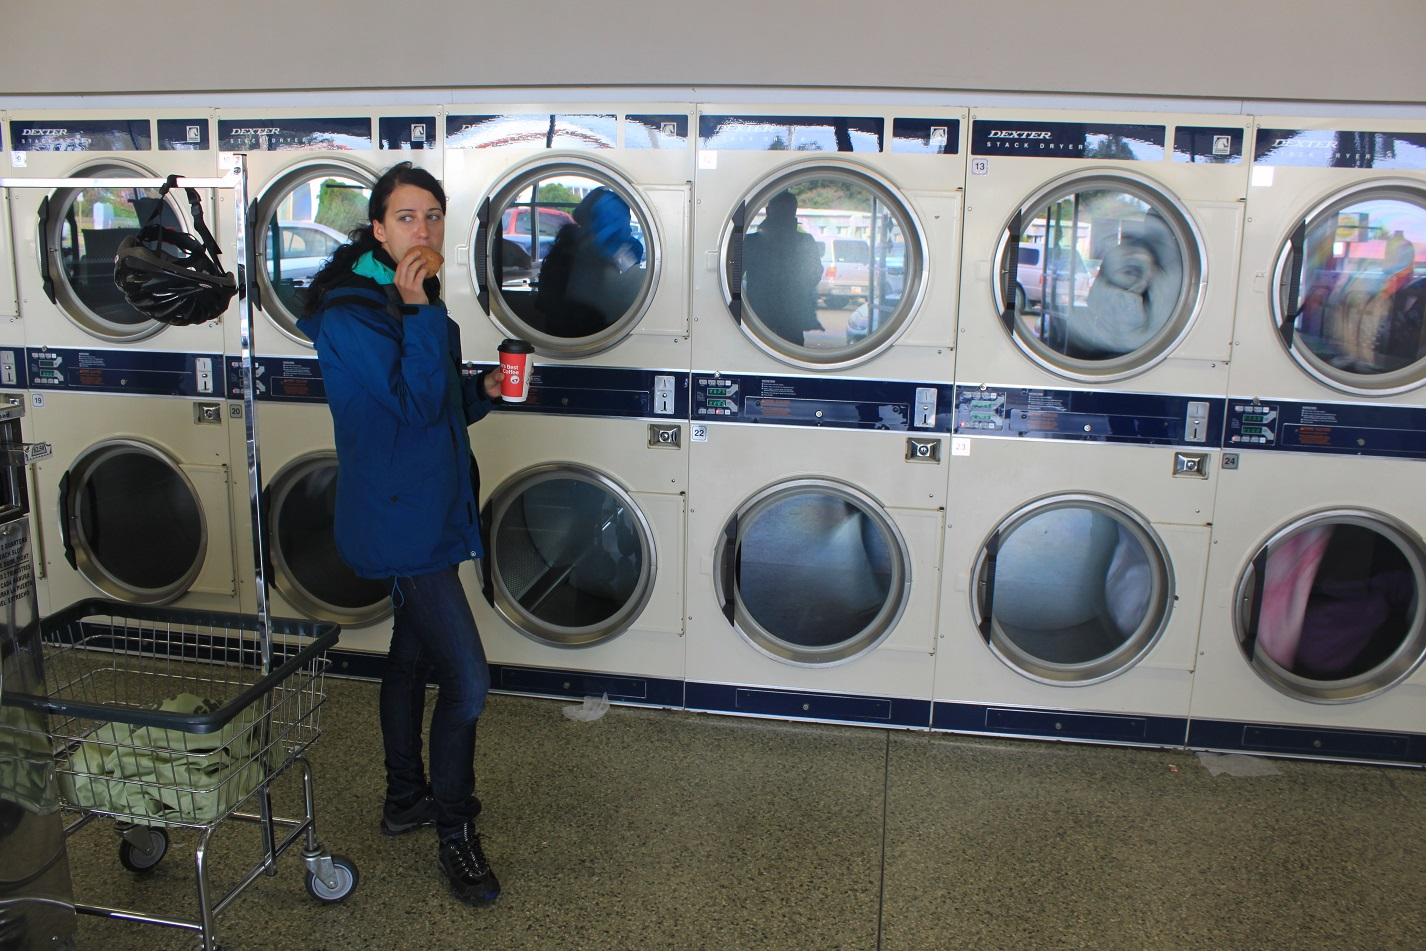 Unser erster Laundry - Besuch in Lincoln City